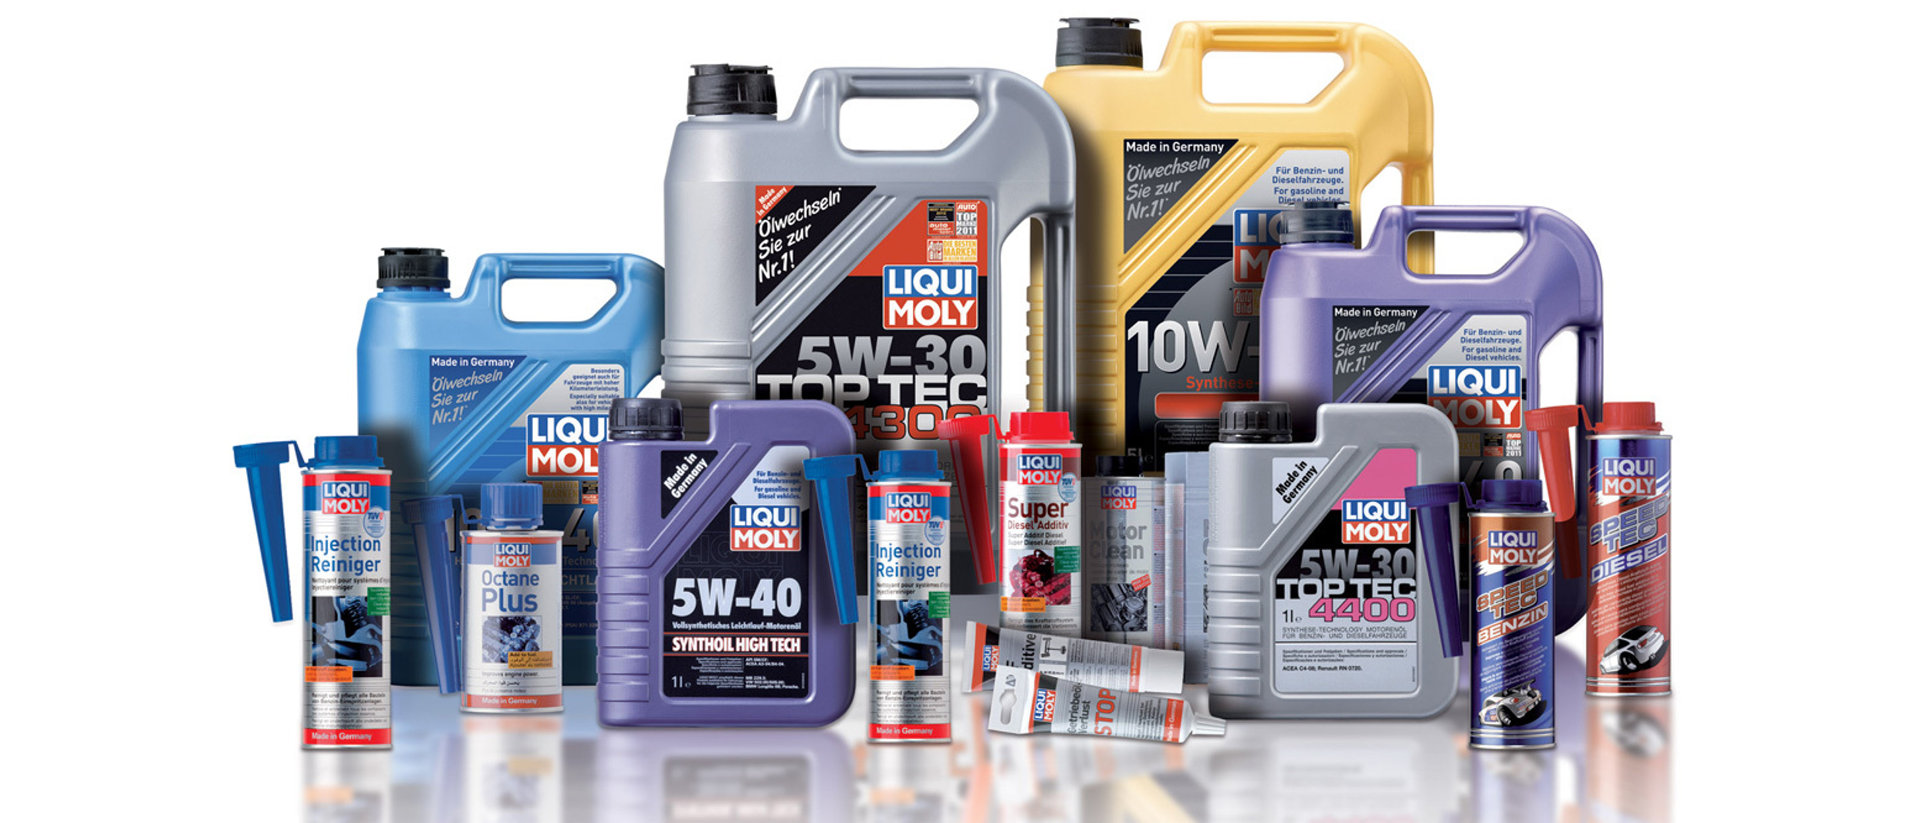 LIQUI MOLY MADE IN GERMANY